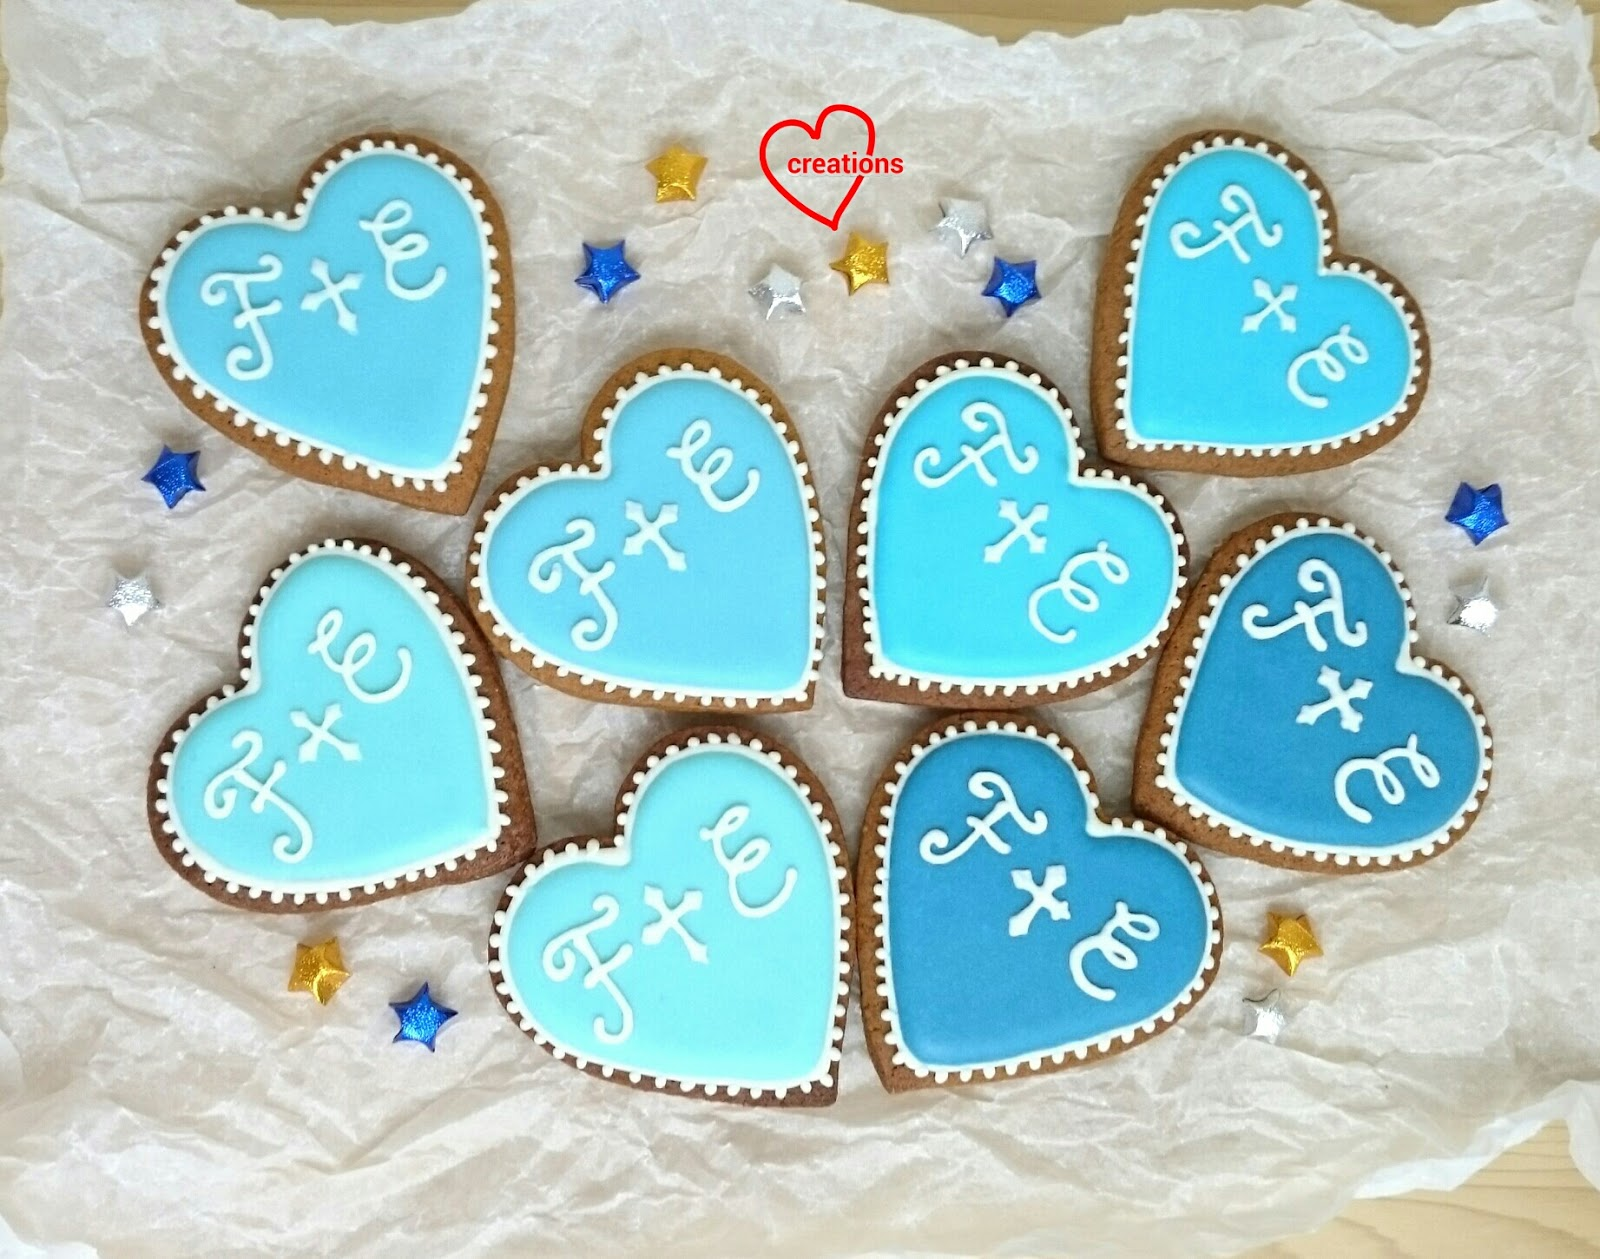 Loving Creations for You: Wedding Brown Sugar Cookies